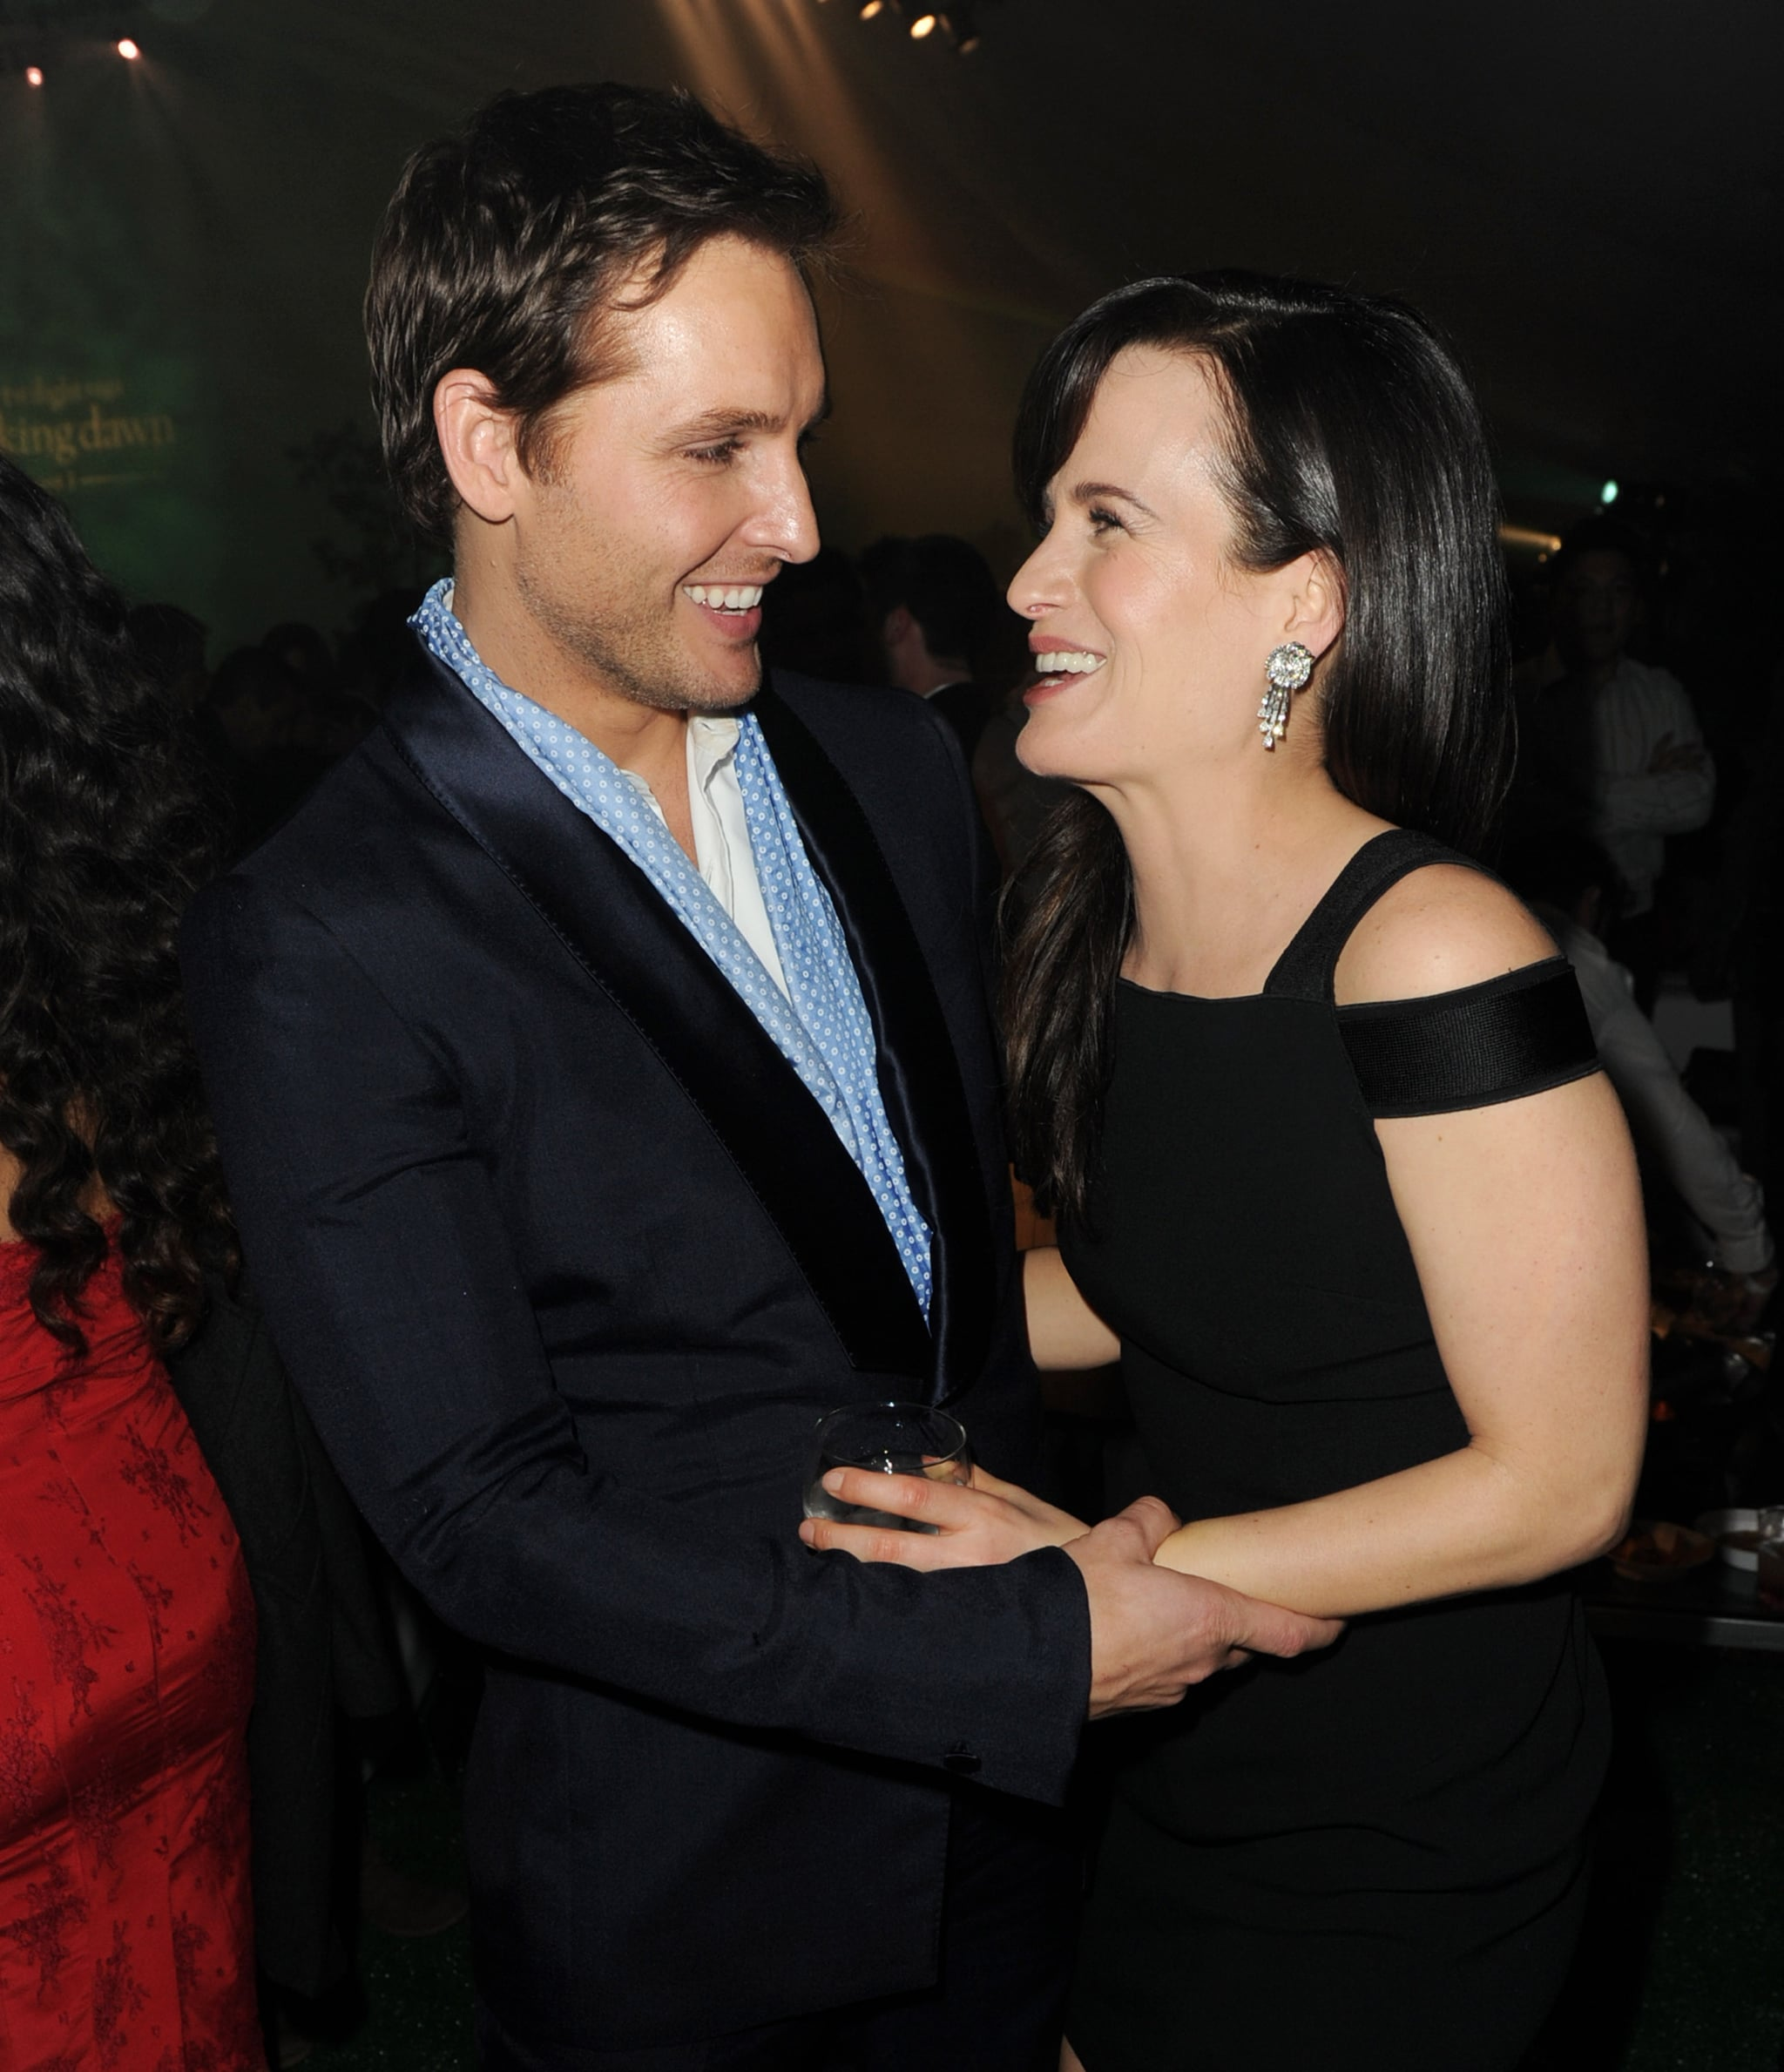 Elizabeth Reaser and Peter Facinelli shared funny stories at the Breaking Dawn LA premiere party.